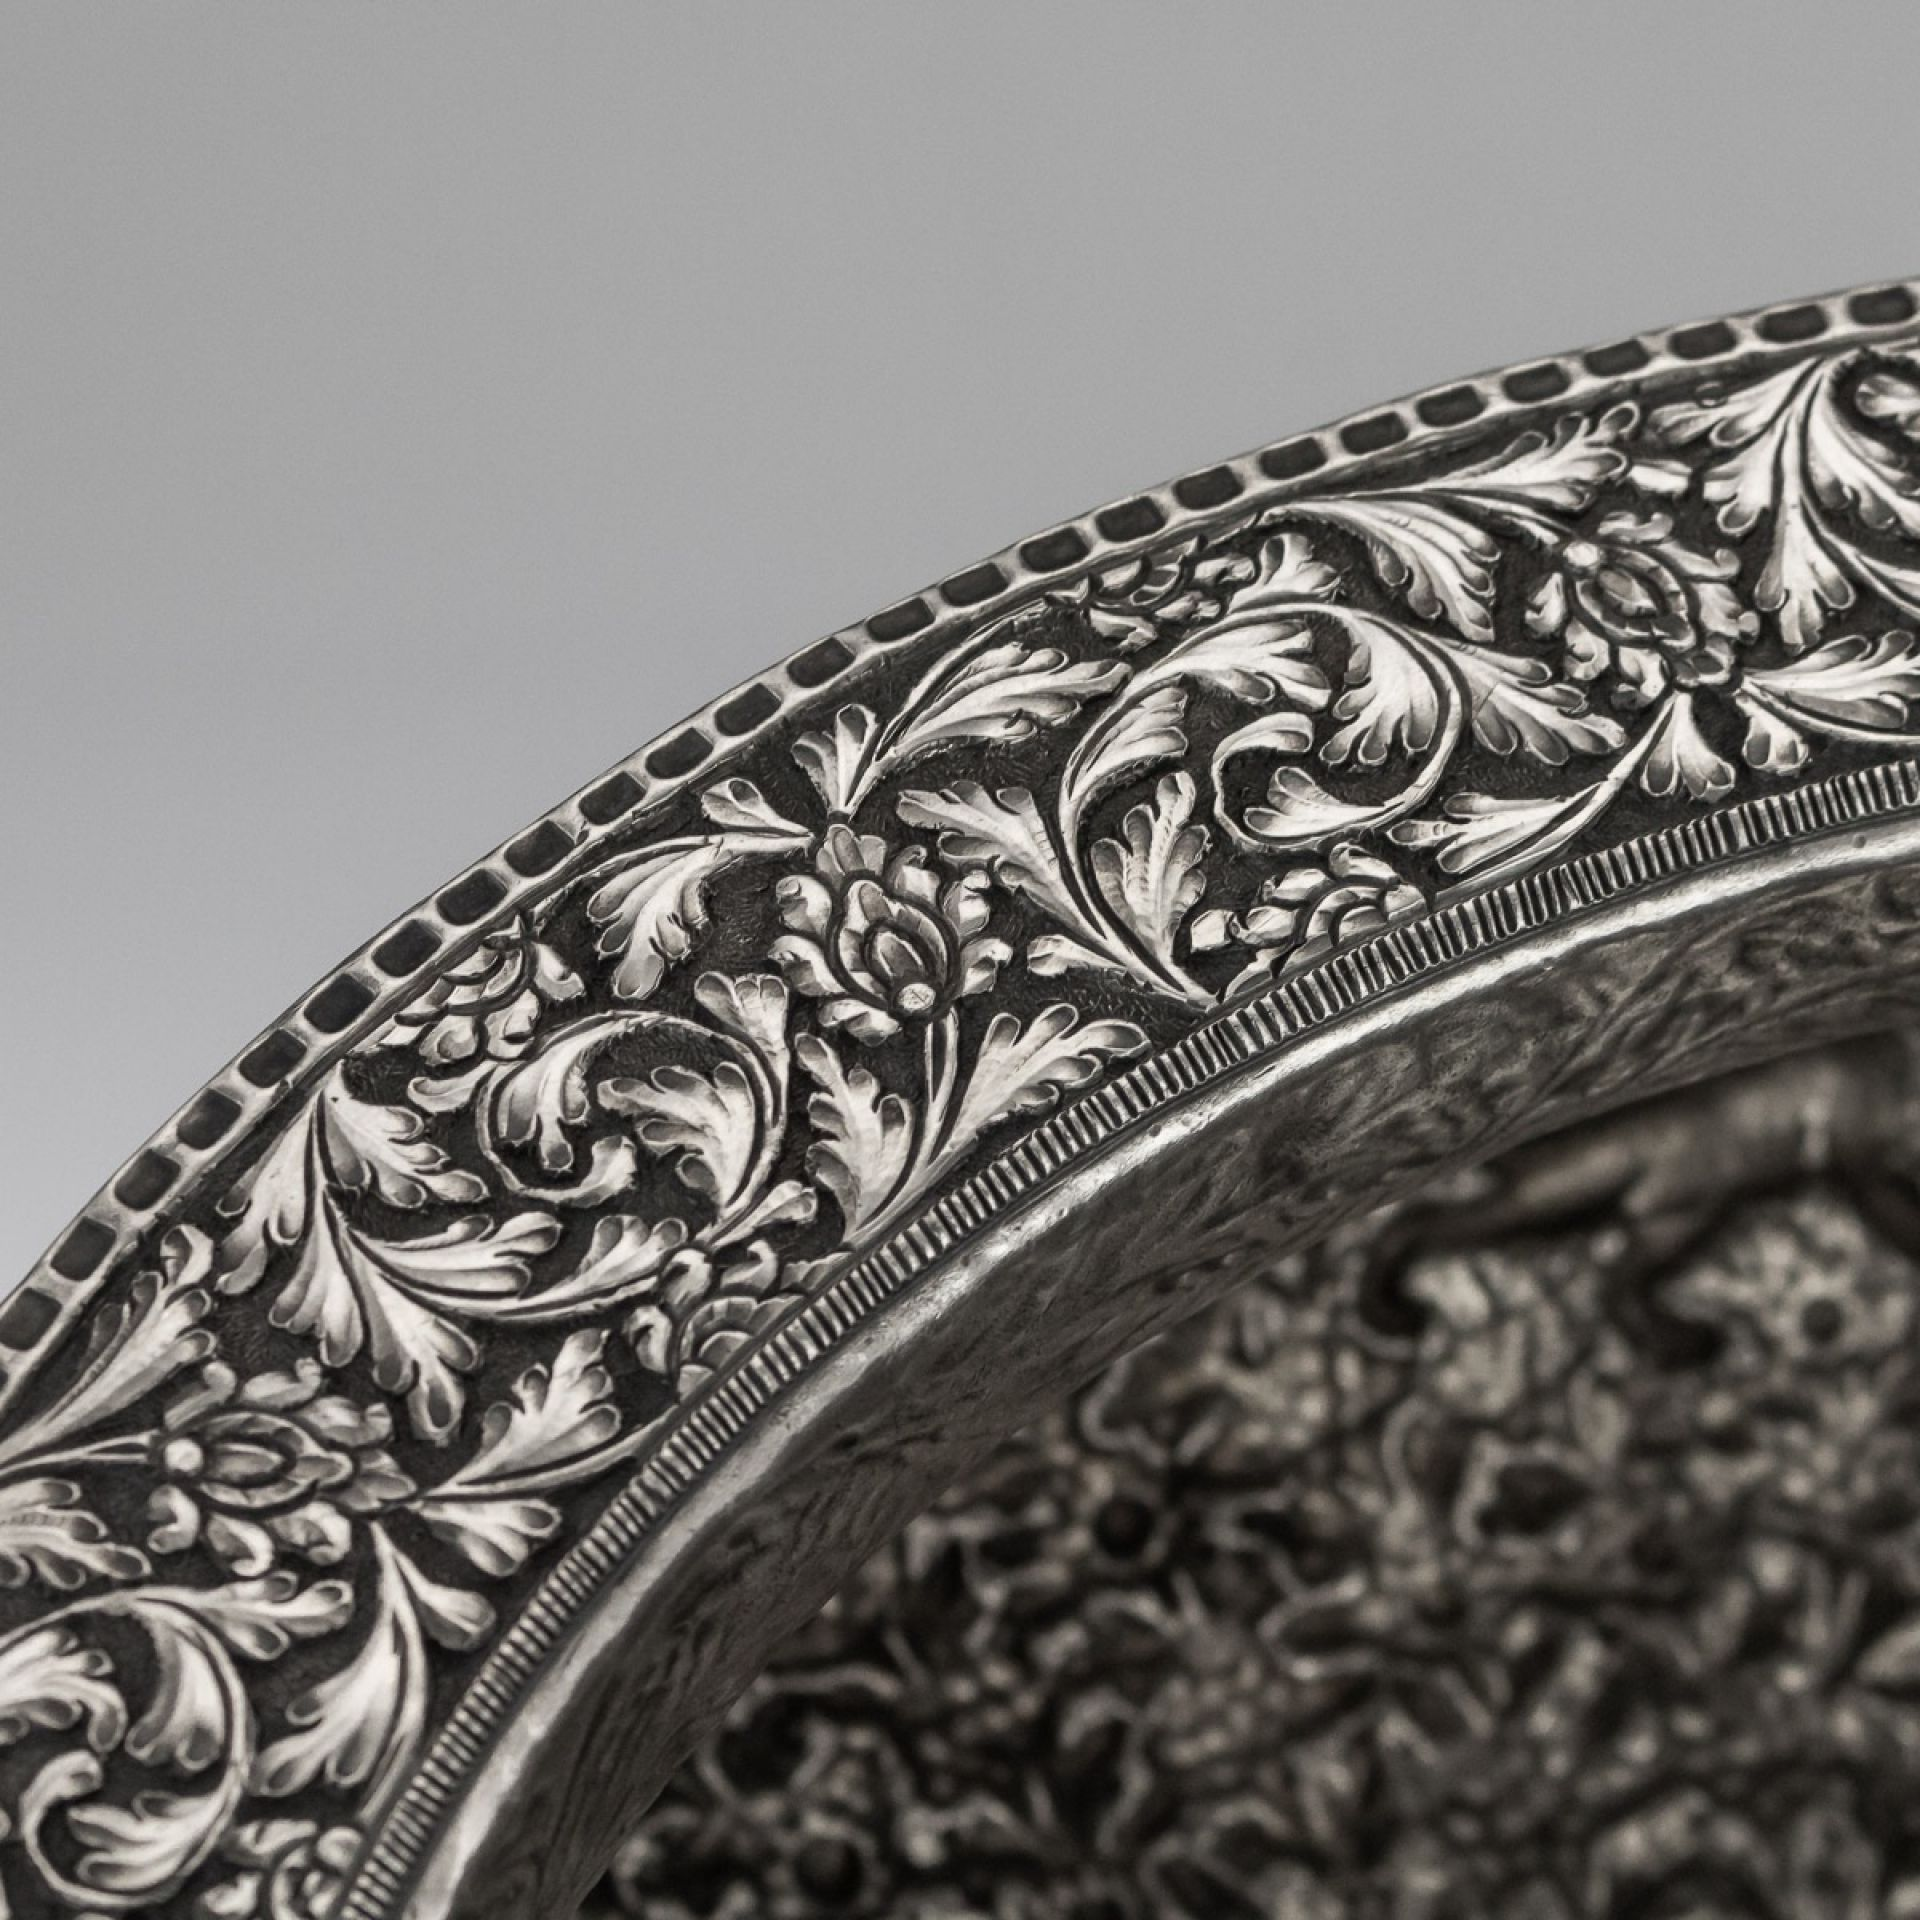 STUNNING 20thC INDIAN HATHRAS SOLID SILVER LARGE DECORATIVE BOWL